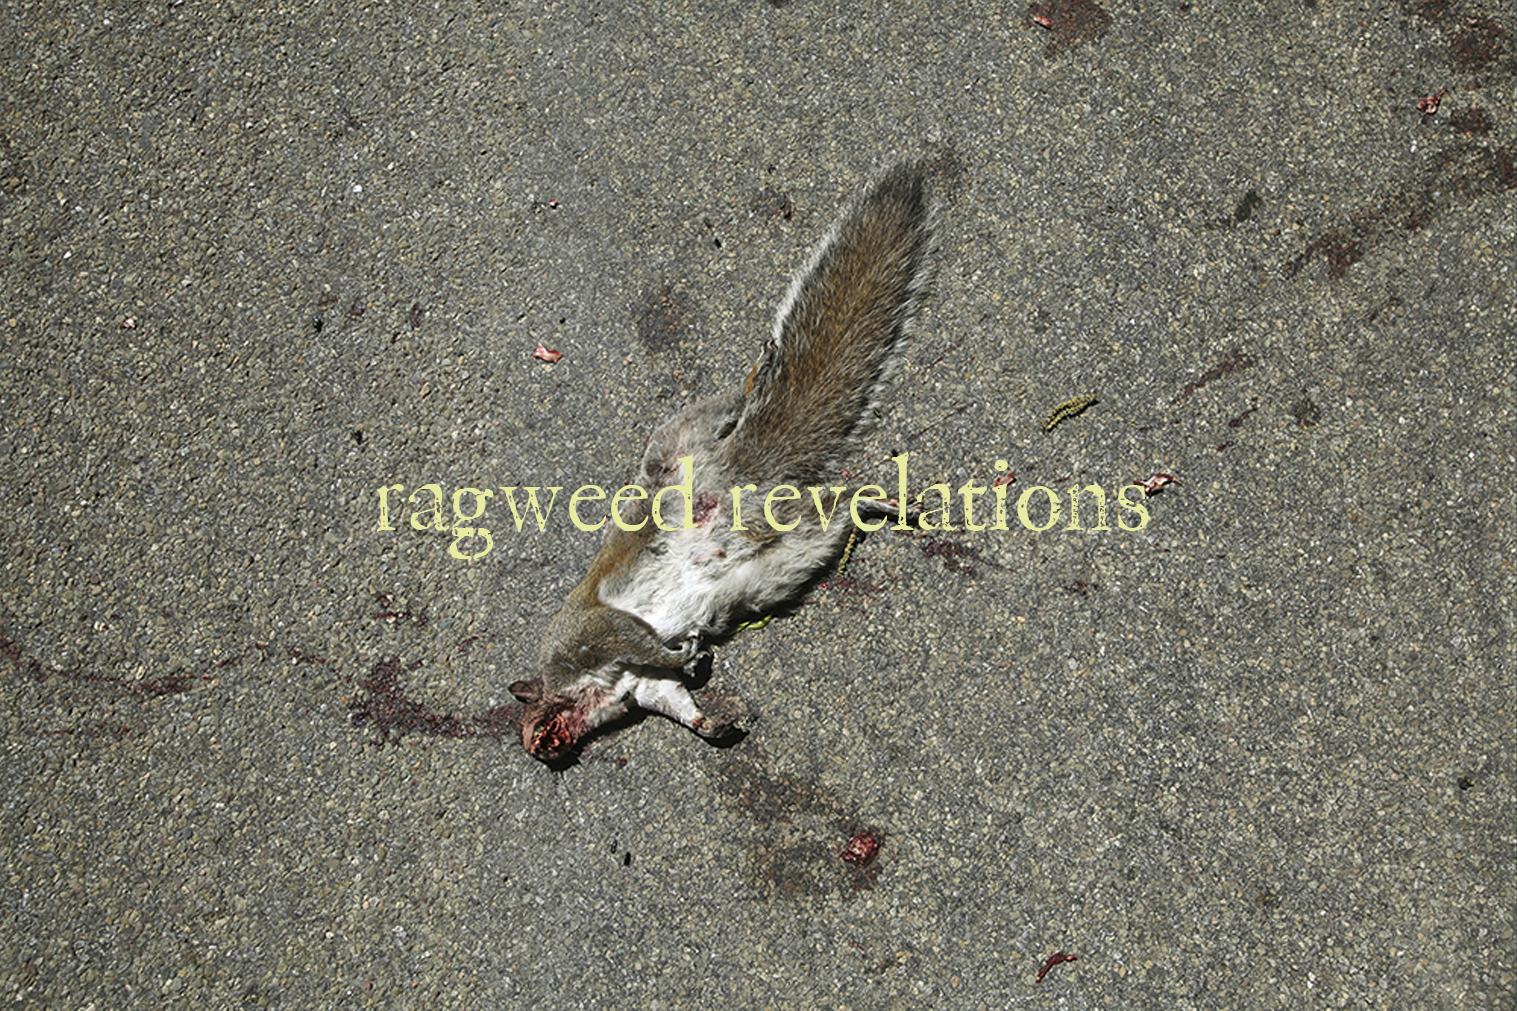 "A photo of a roadkill squirrel with text overlaid ""ragweed revelations"""